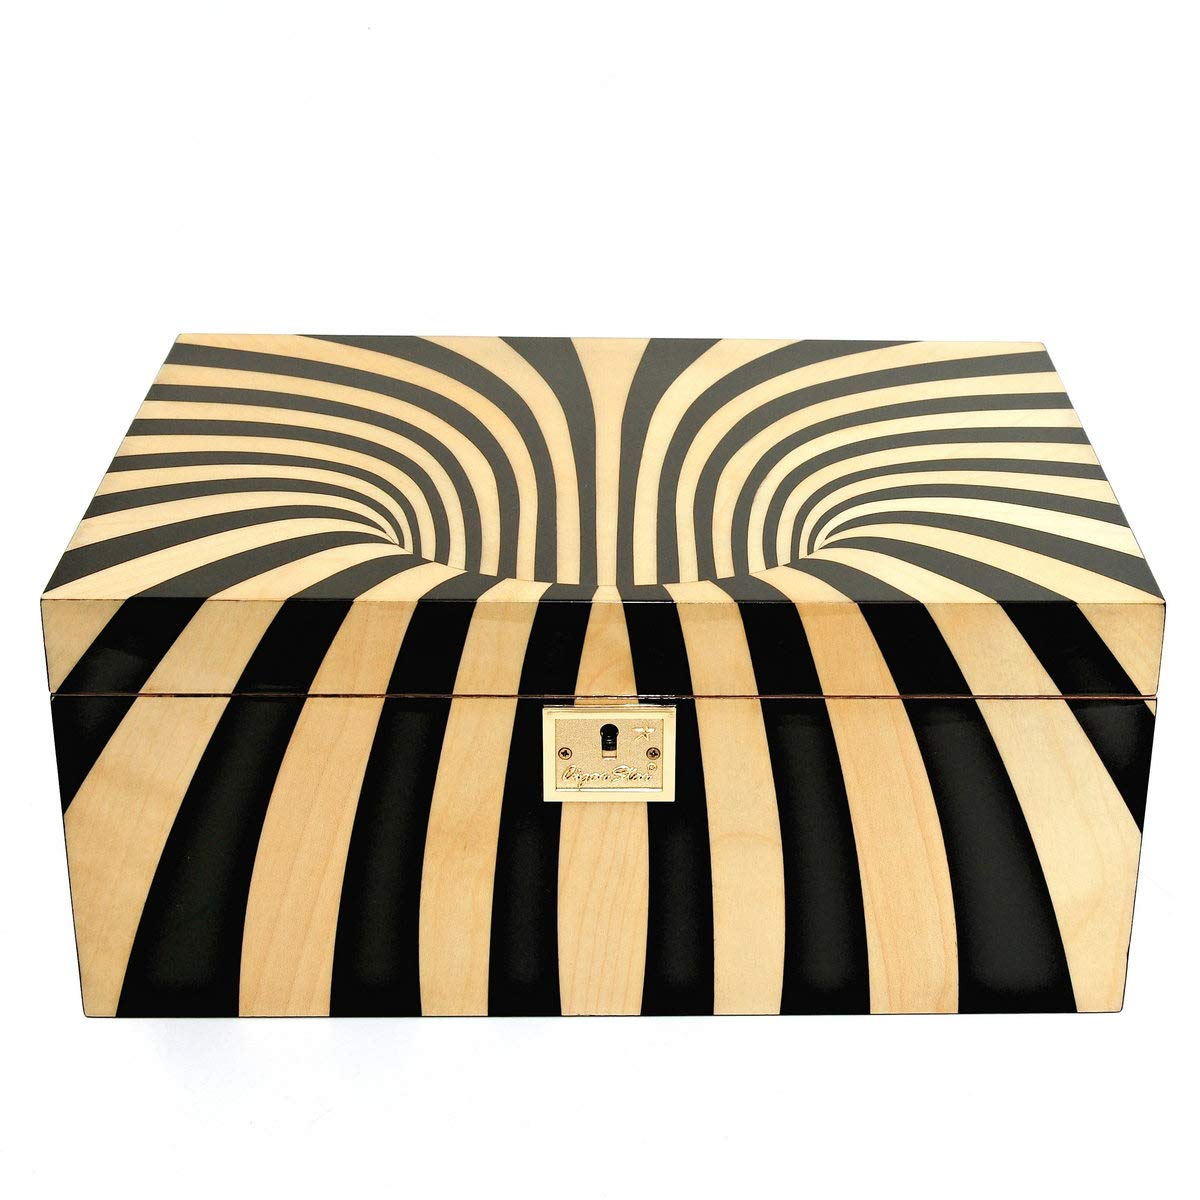 Cigar Star Boketto Humidor Limited Edition Optical Illusion Made from Wood! by Cigar Star